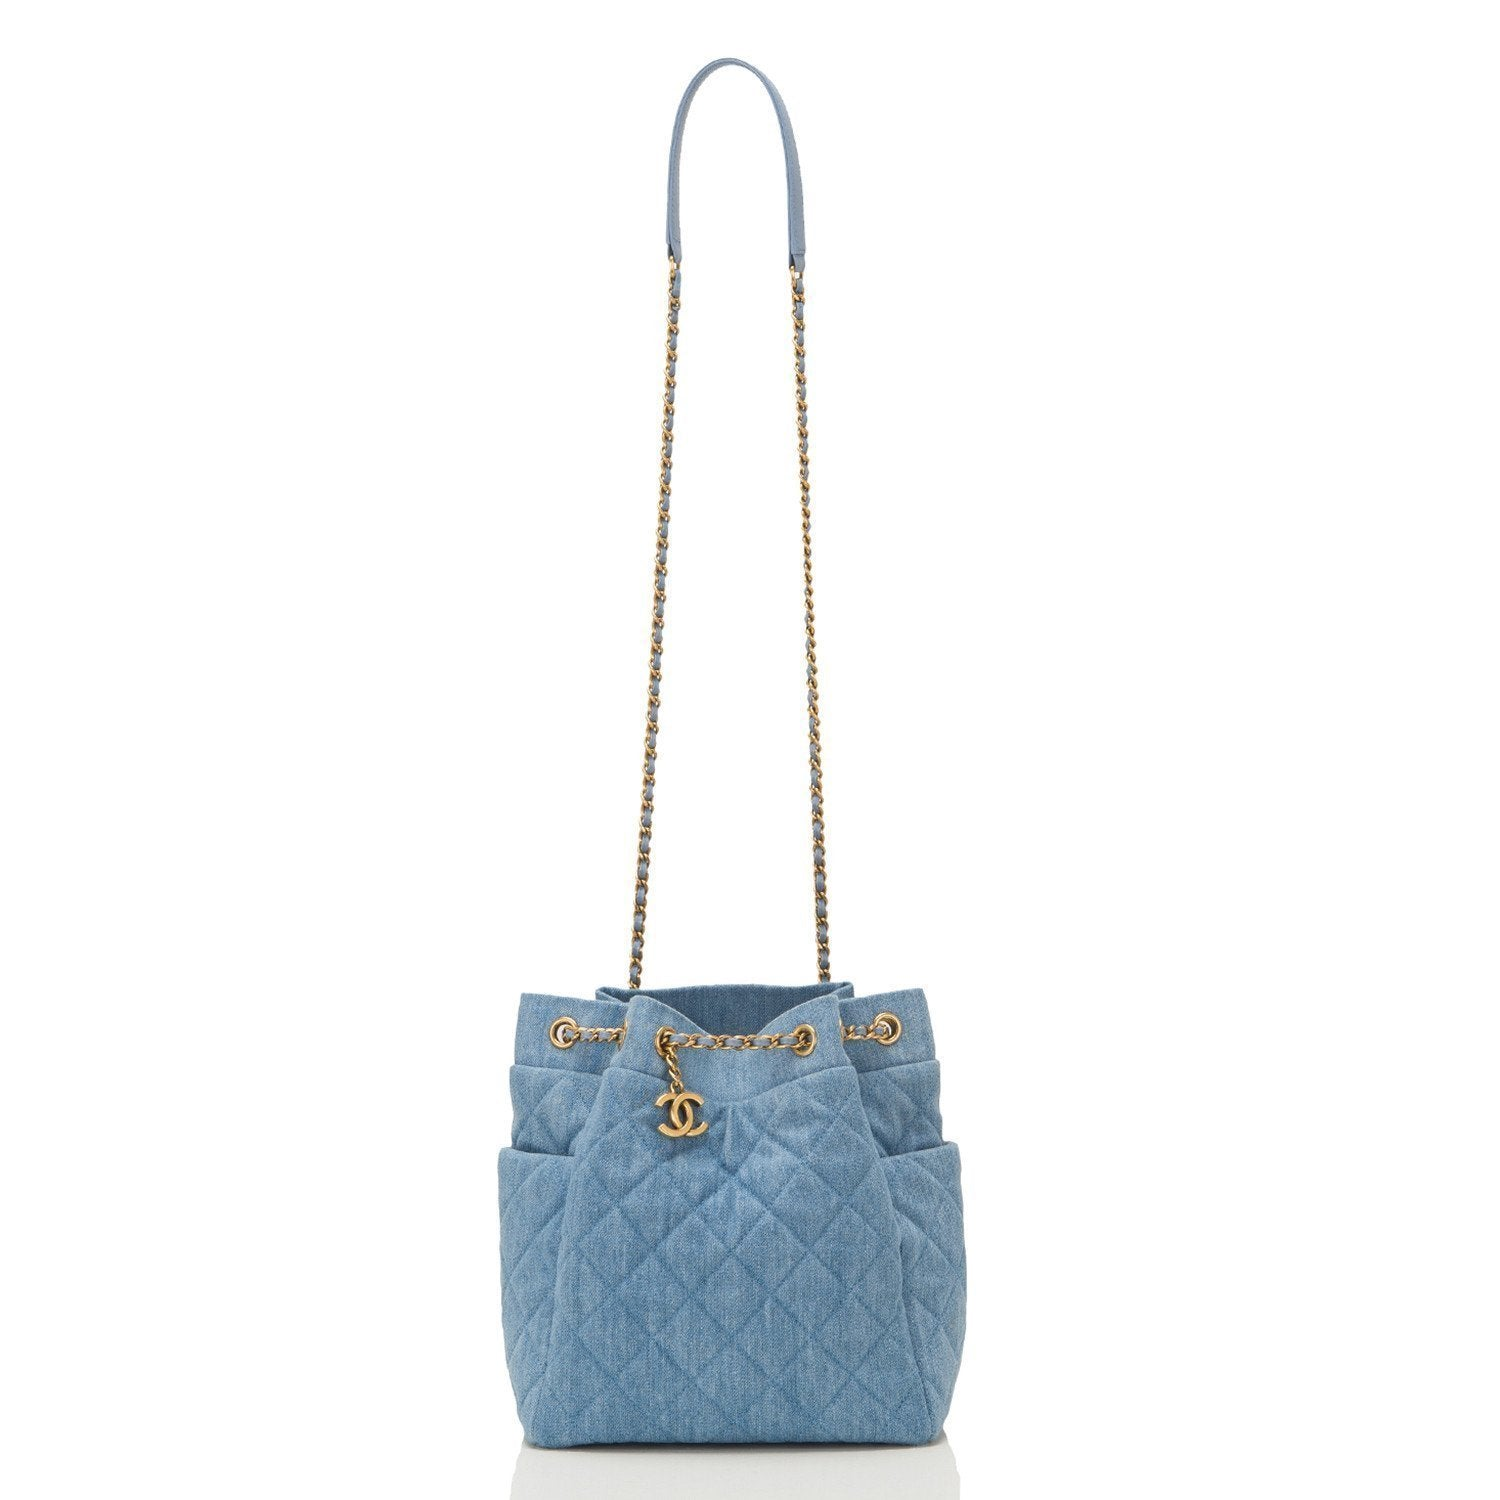 Chanel Light Blue Quilted Denim Drawstring Bag Preloved Mint Handbags